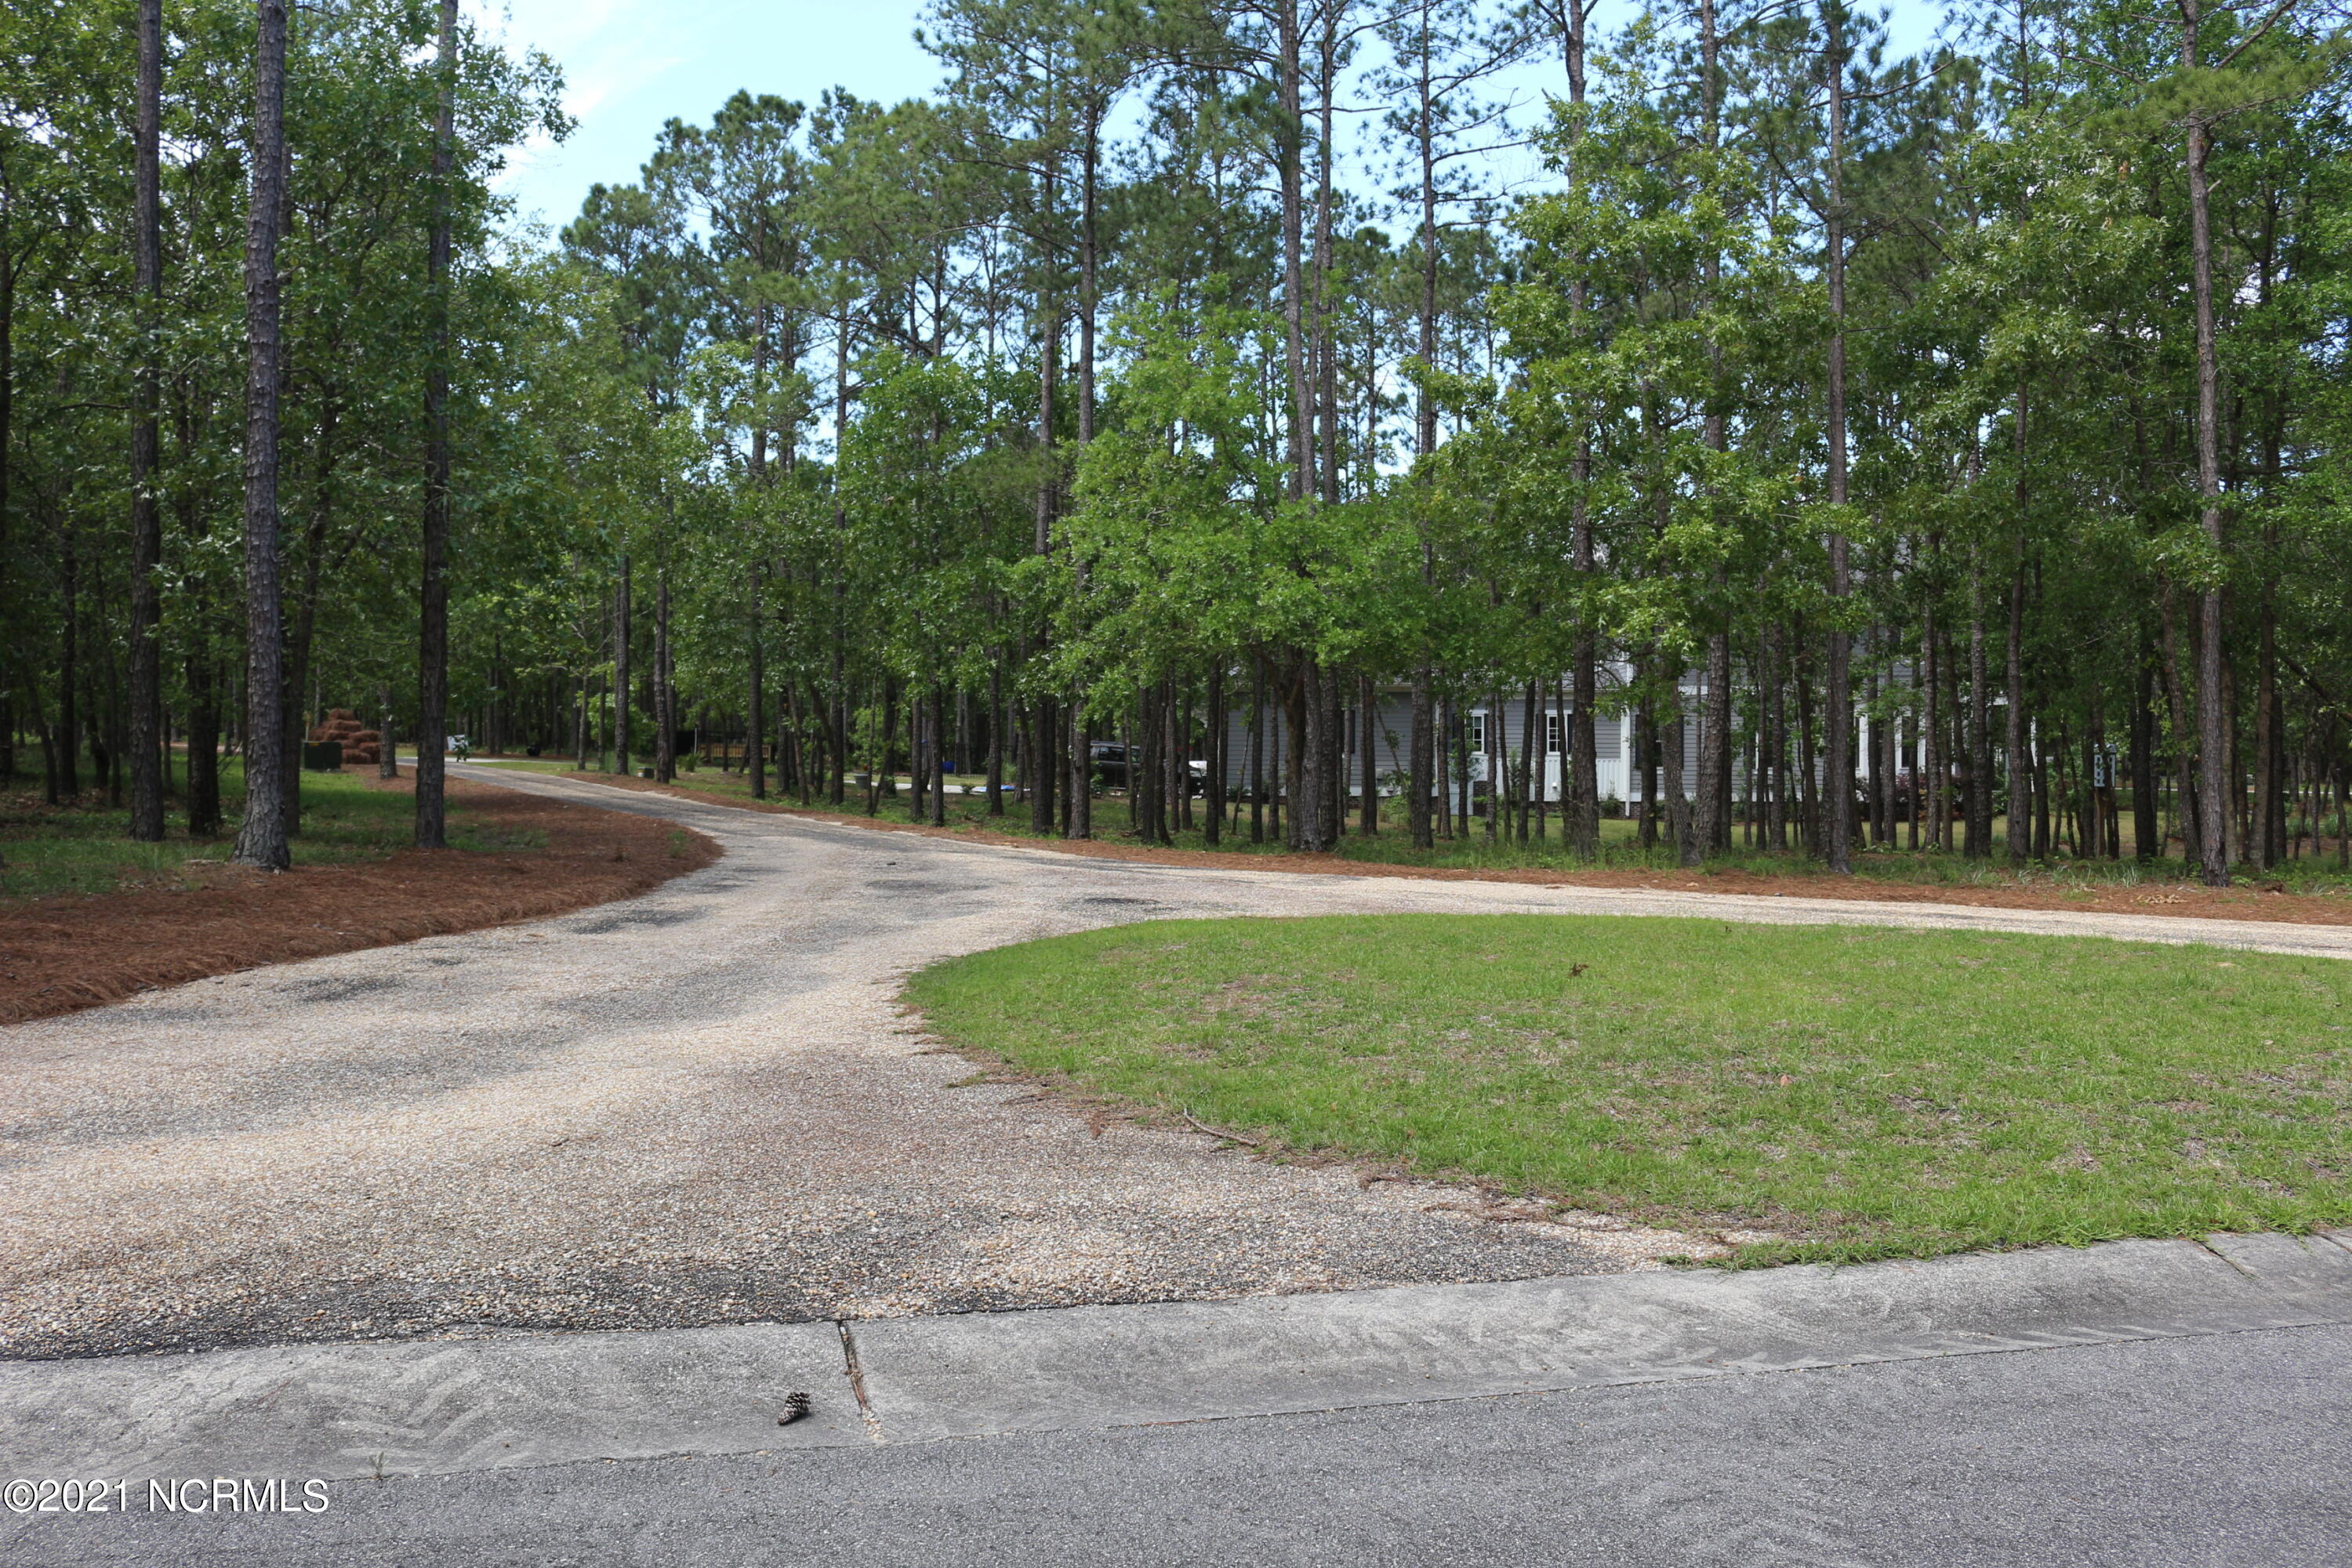 Access to driveways